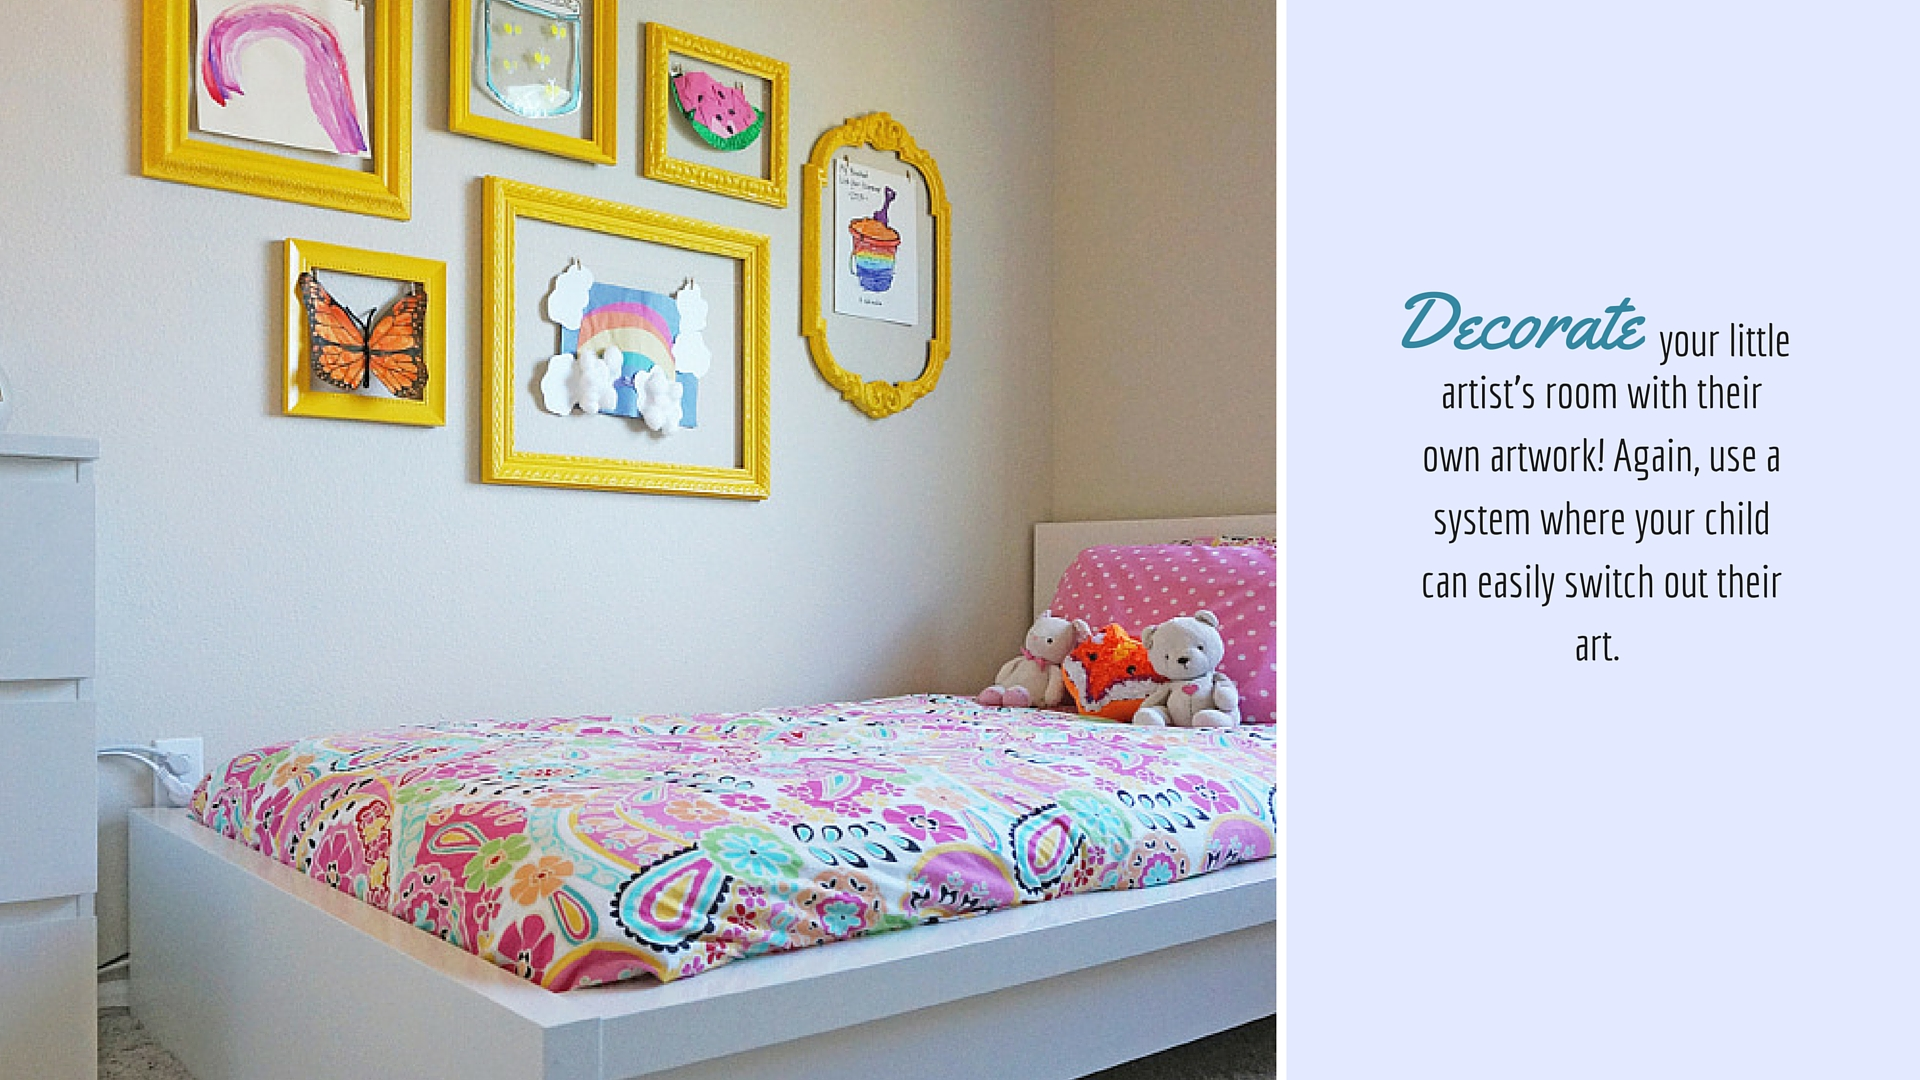 Decorate child's room